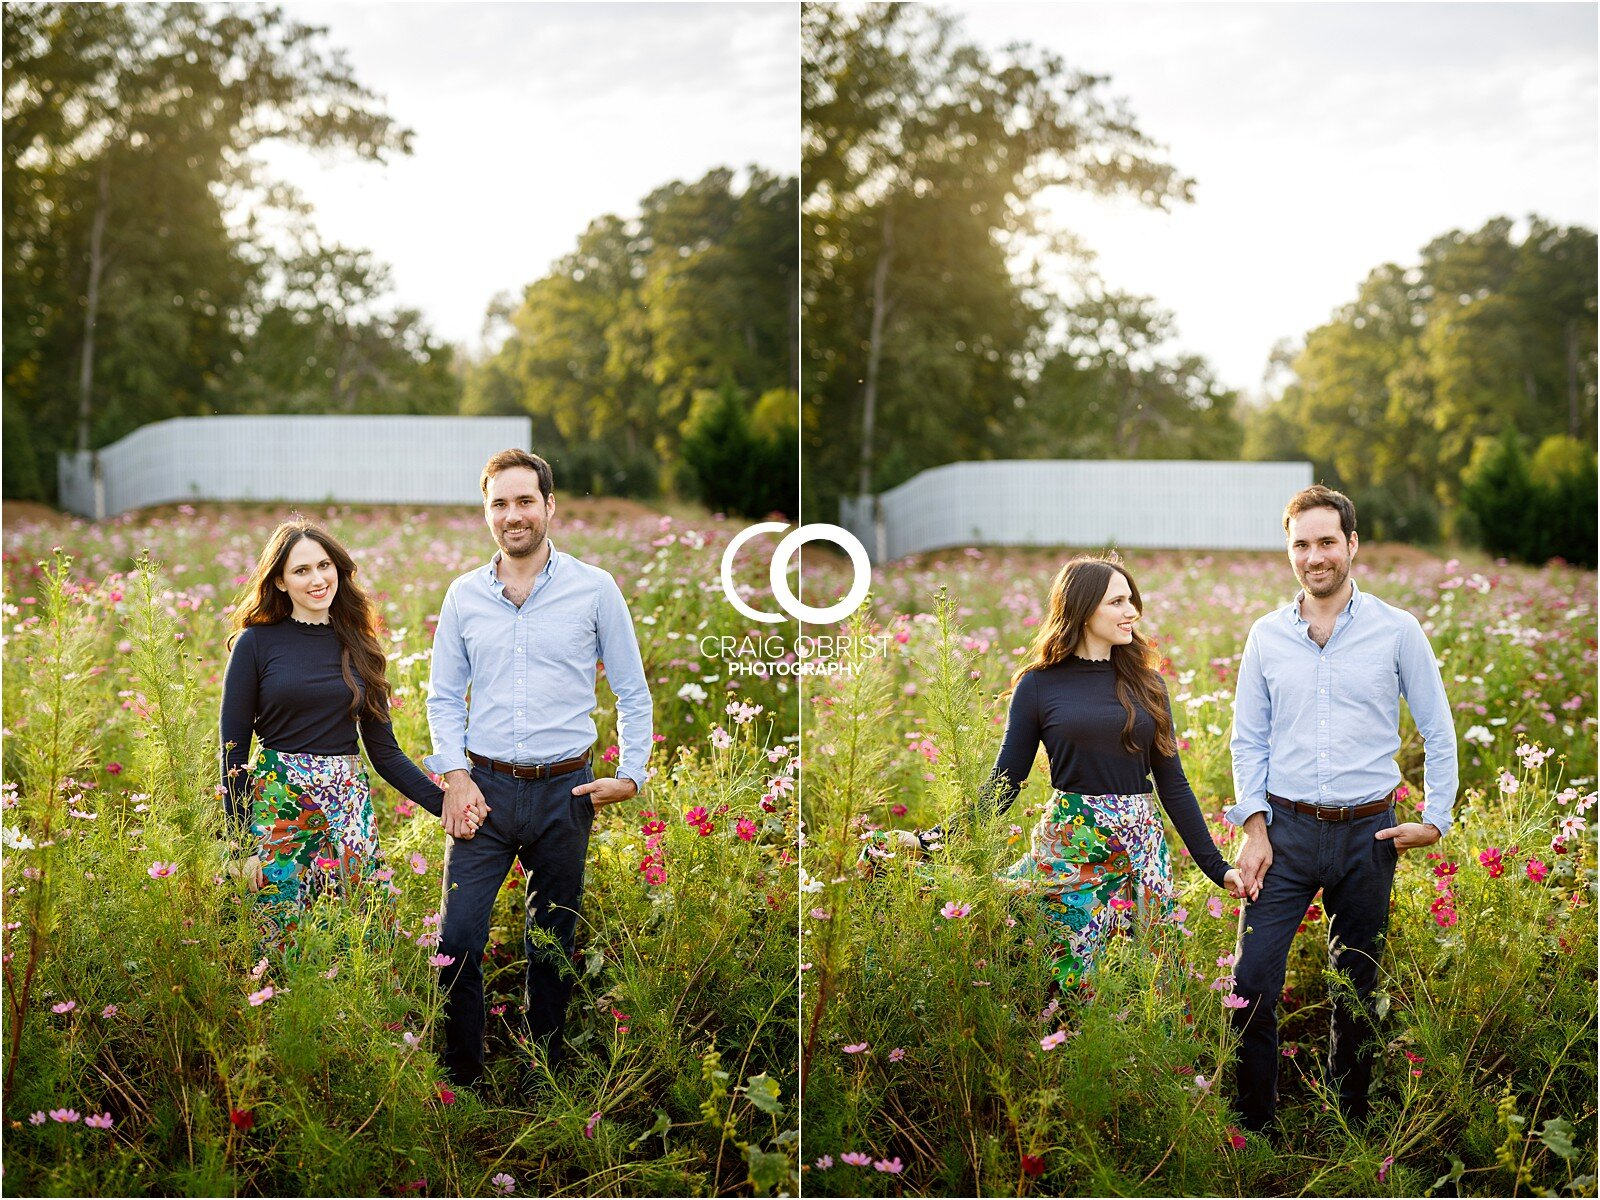 The Barn at Little River Little River Farms Engagement Wedding Portraits Fairy Tale_0014.jpg